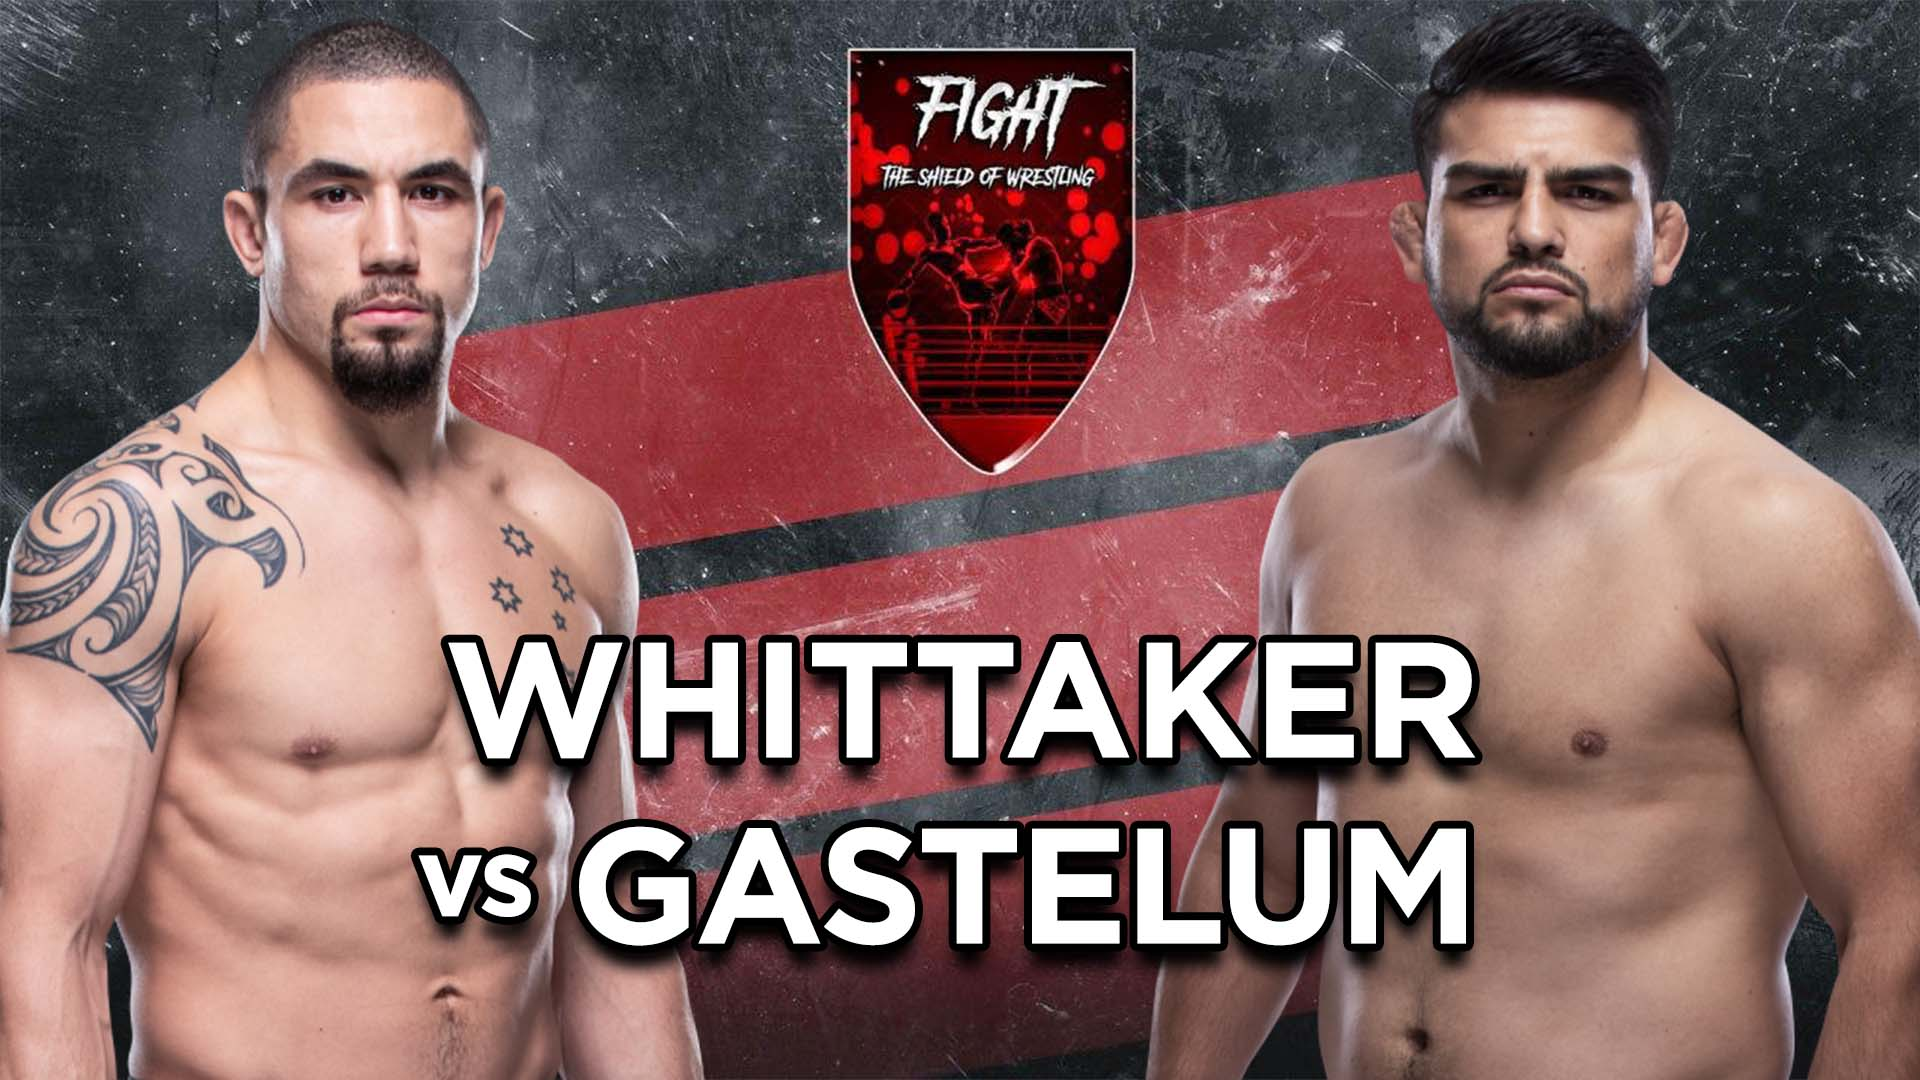 UFC Fight Night: Whittaker vs Gastelum risultati live